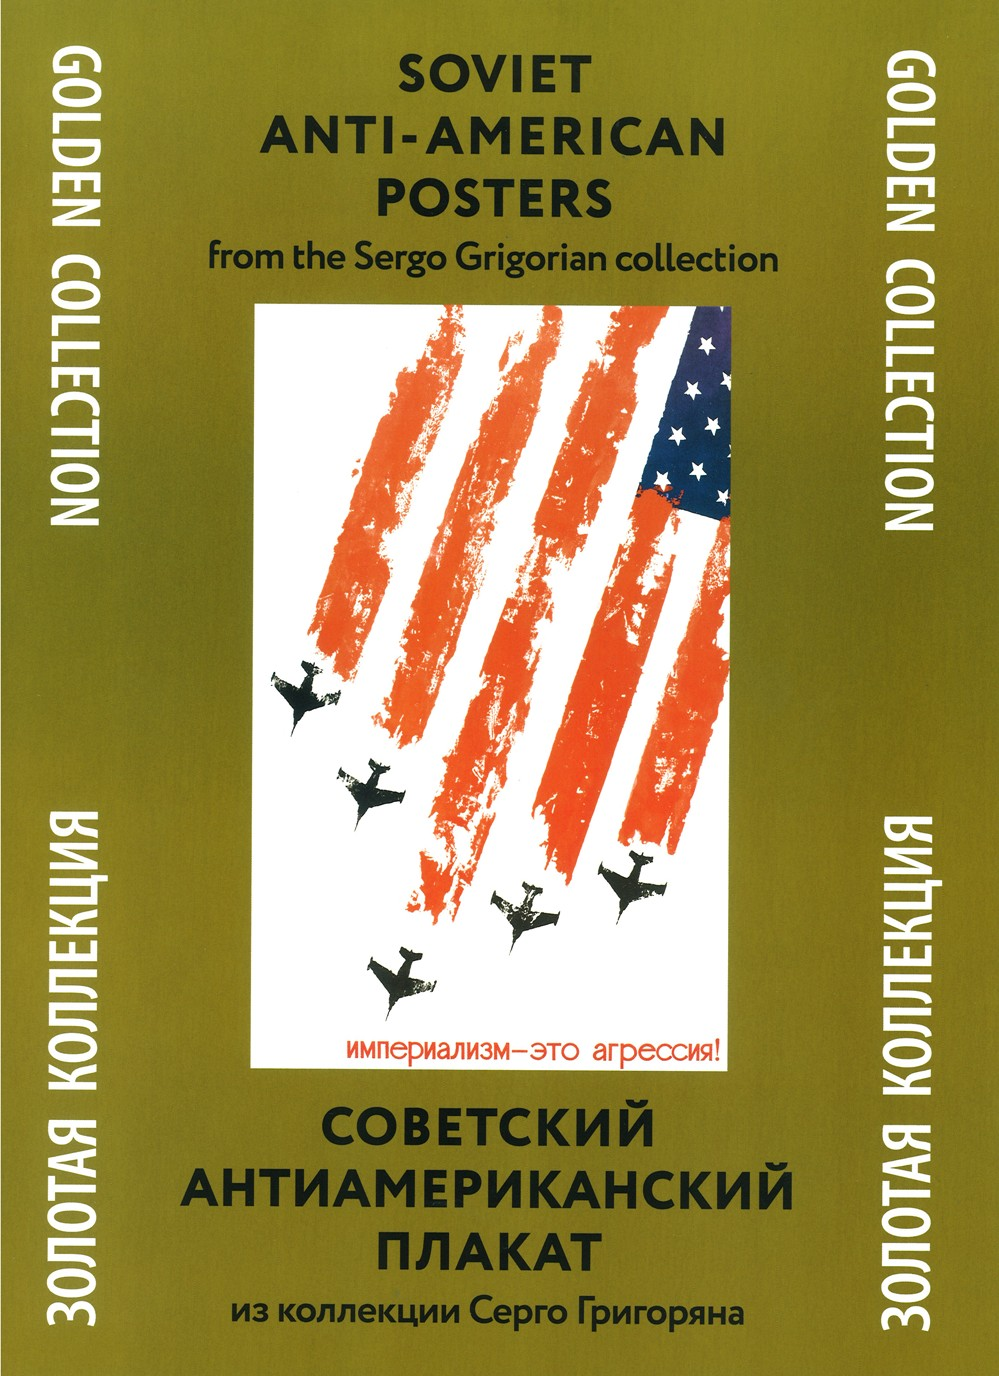 Posters Collection. Soviet anti-American posters. From the Sergo Grigorian collection. Golden Collection